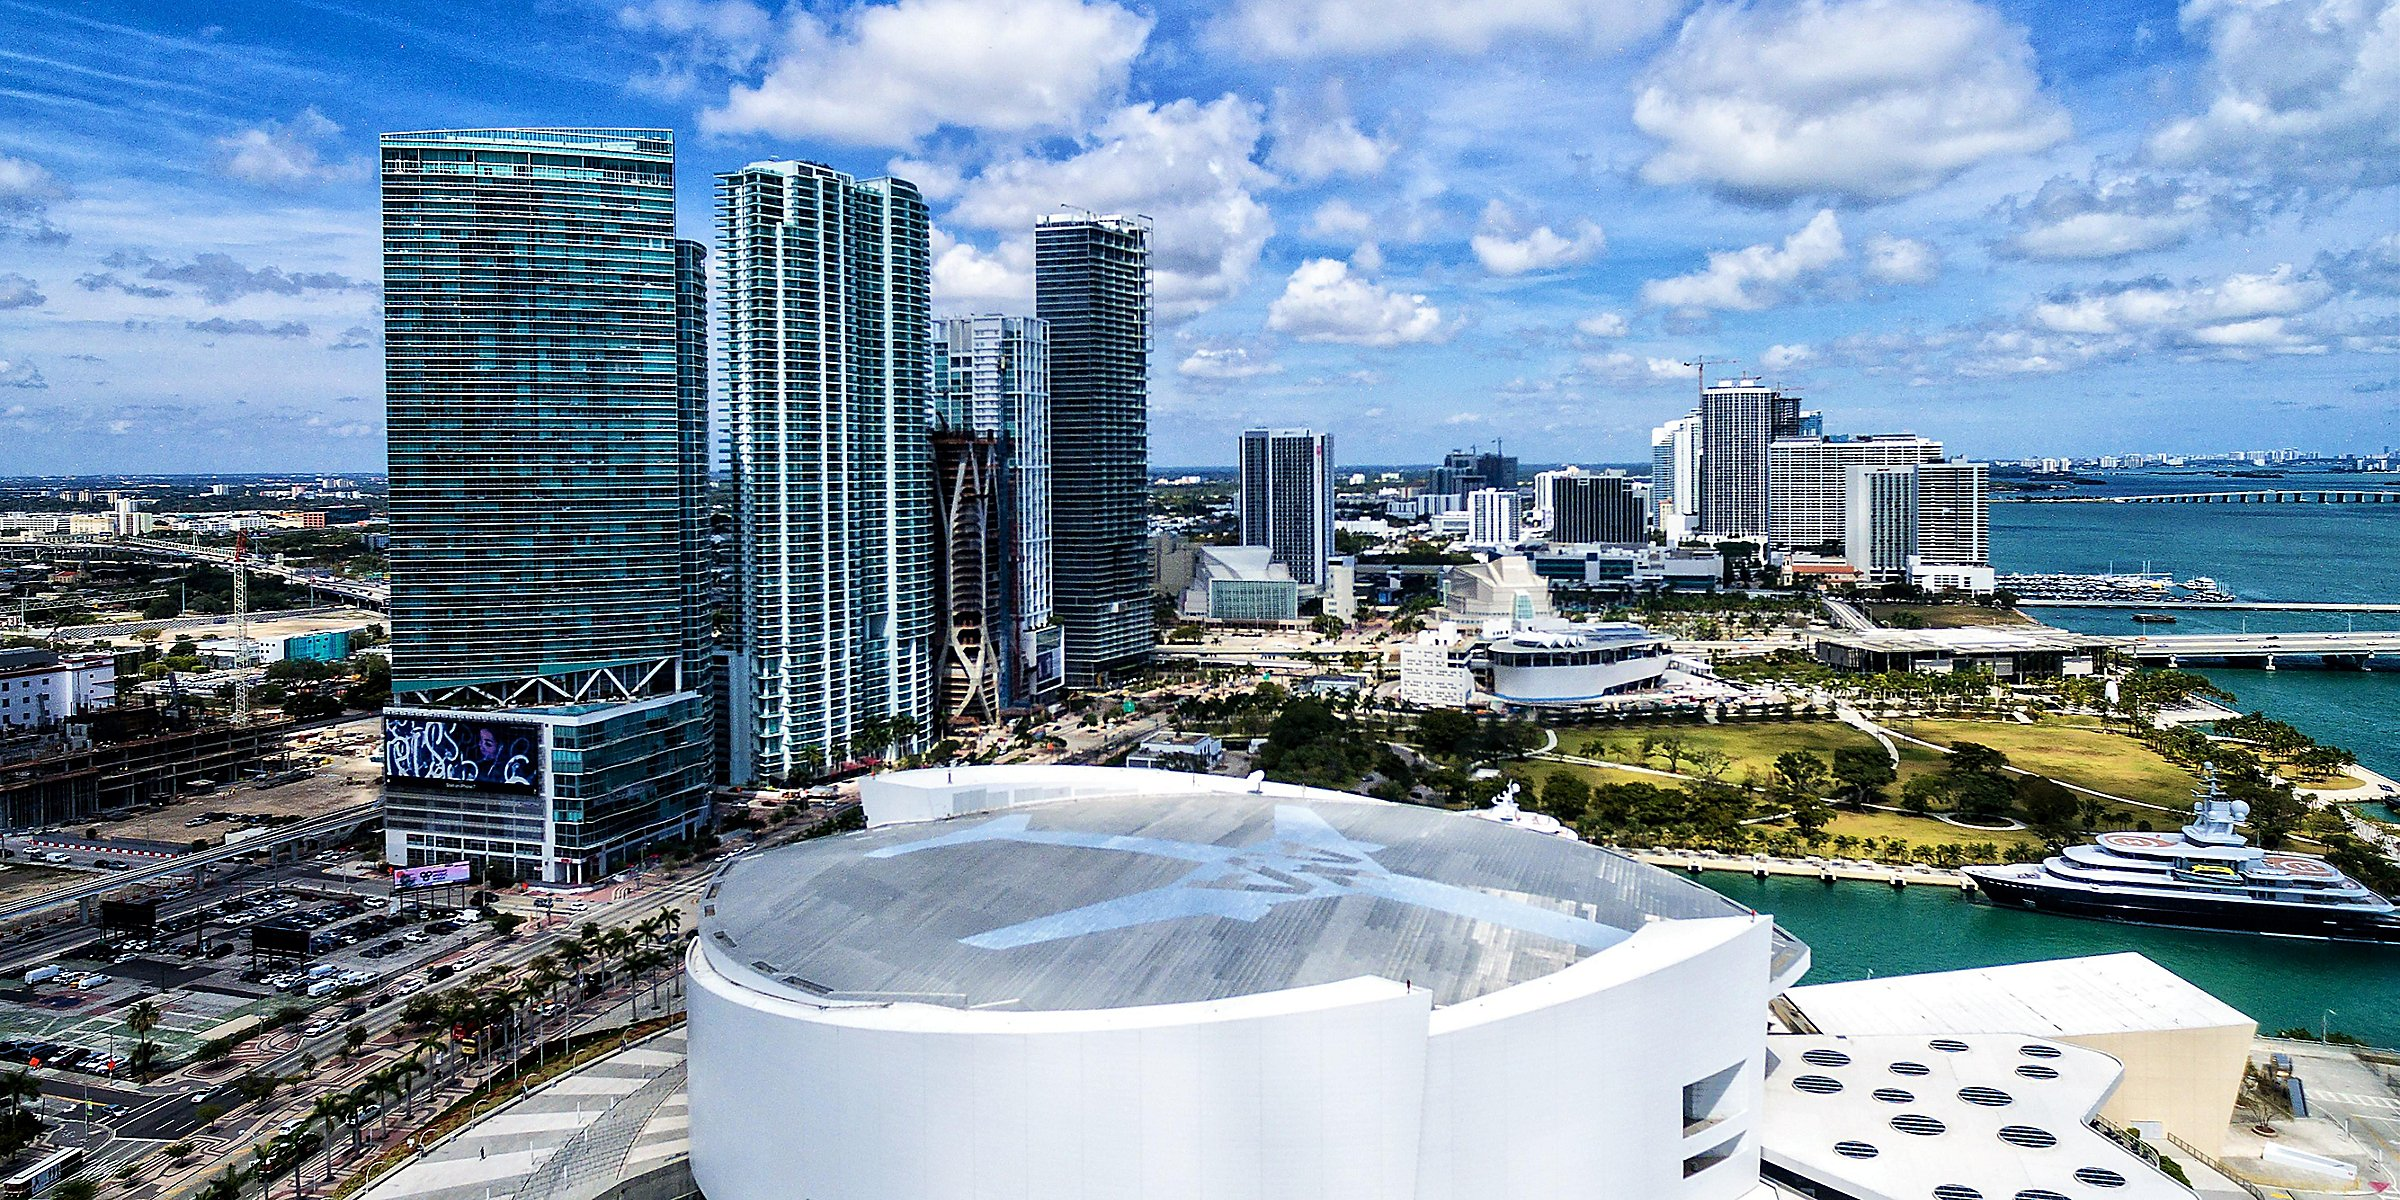 Hotels Near Brickell Miami